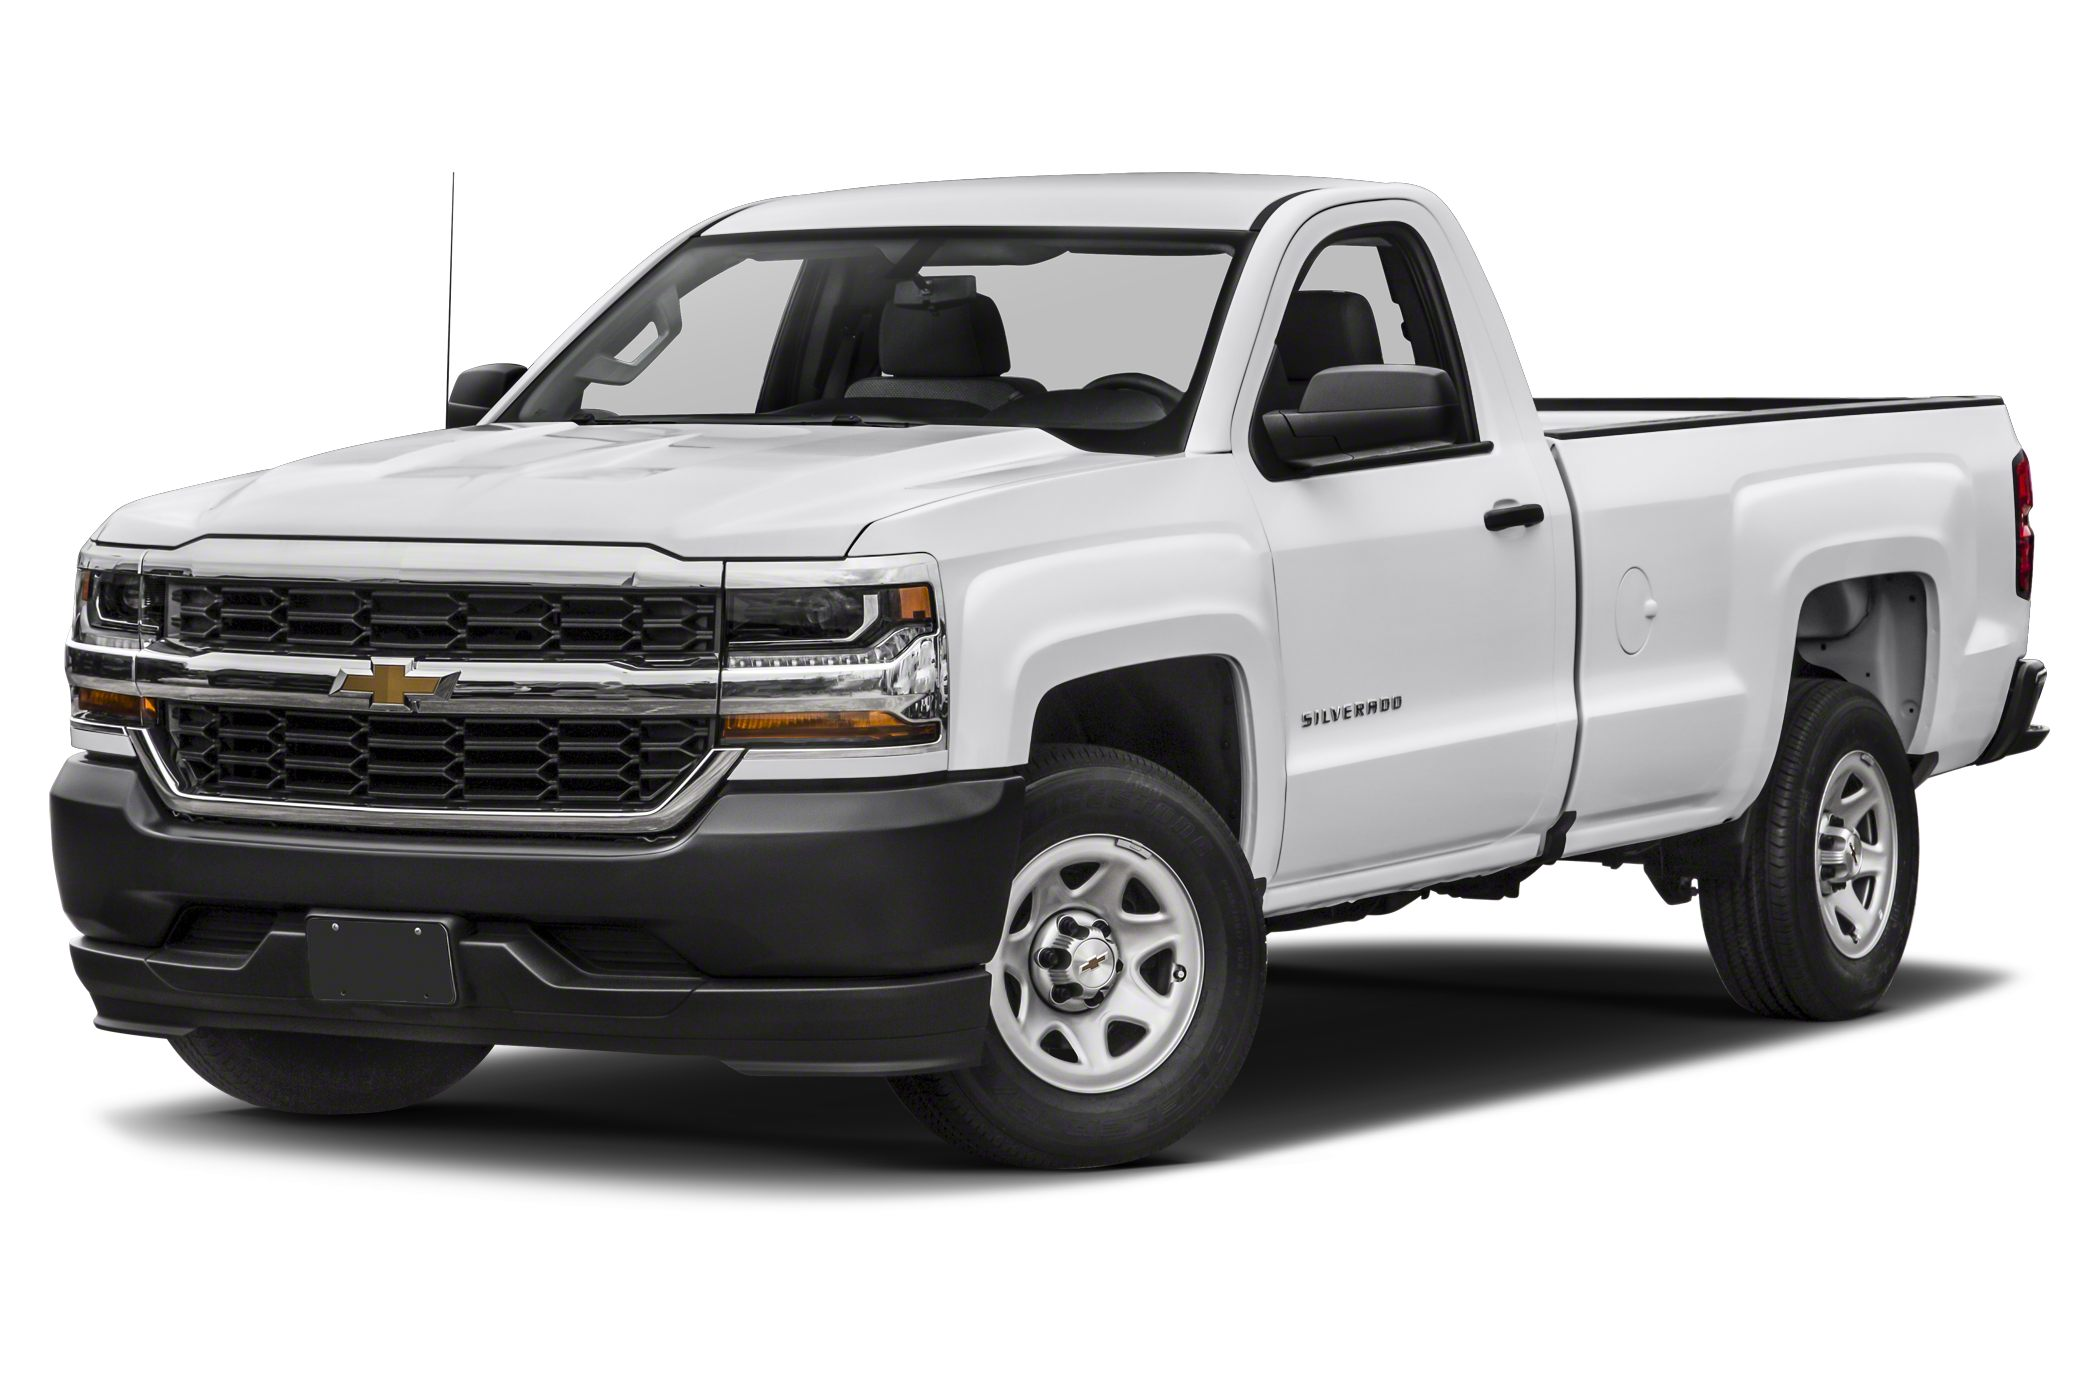 2017 Chevrolet Silverado 1500 Wt 4x4 Regular Cab 6 6 Ft Box 119 In Wb Pictures